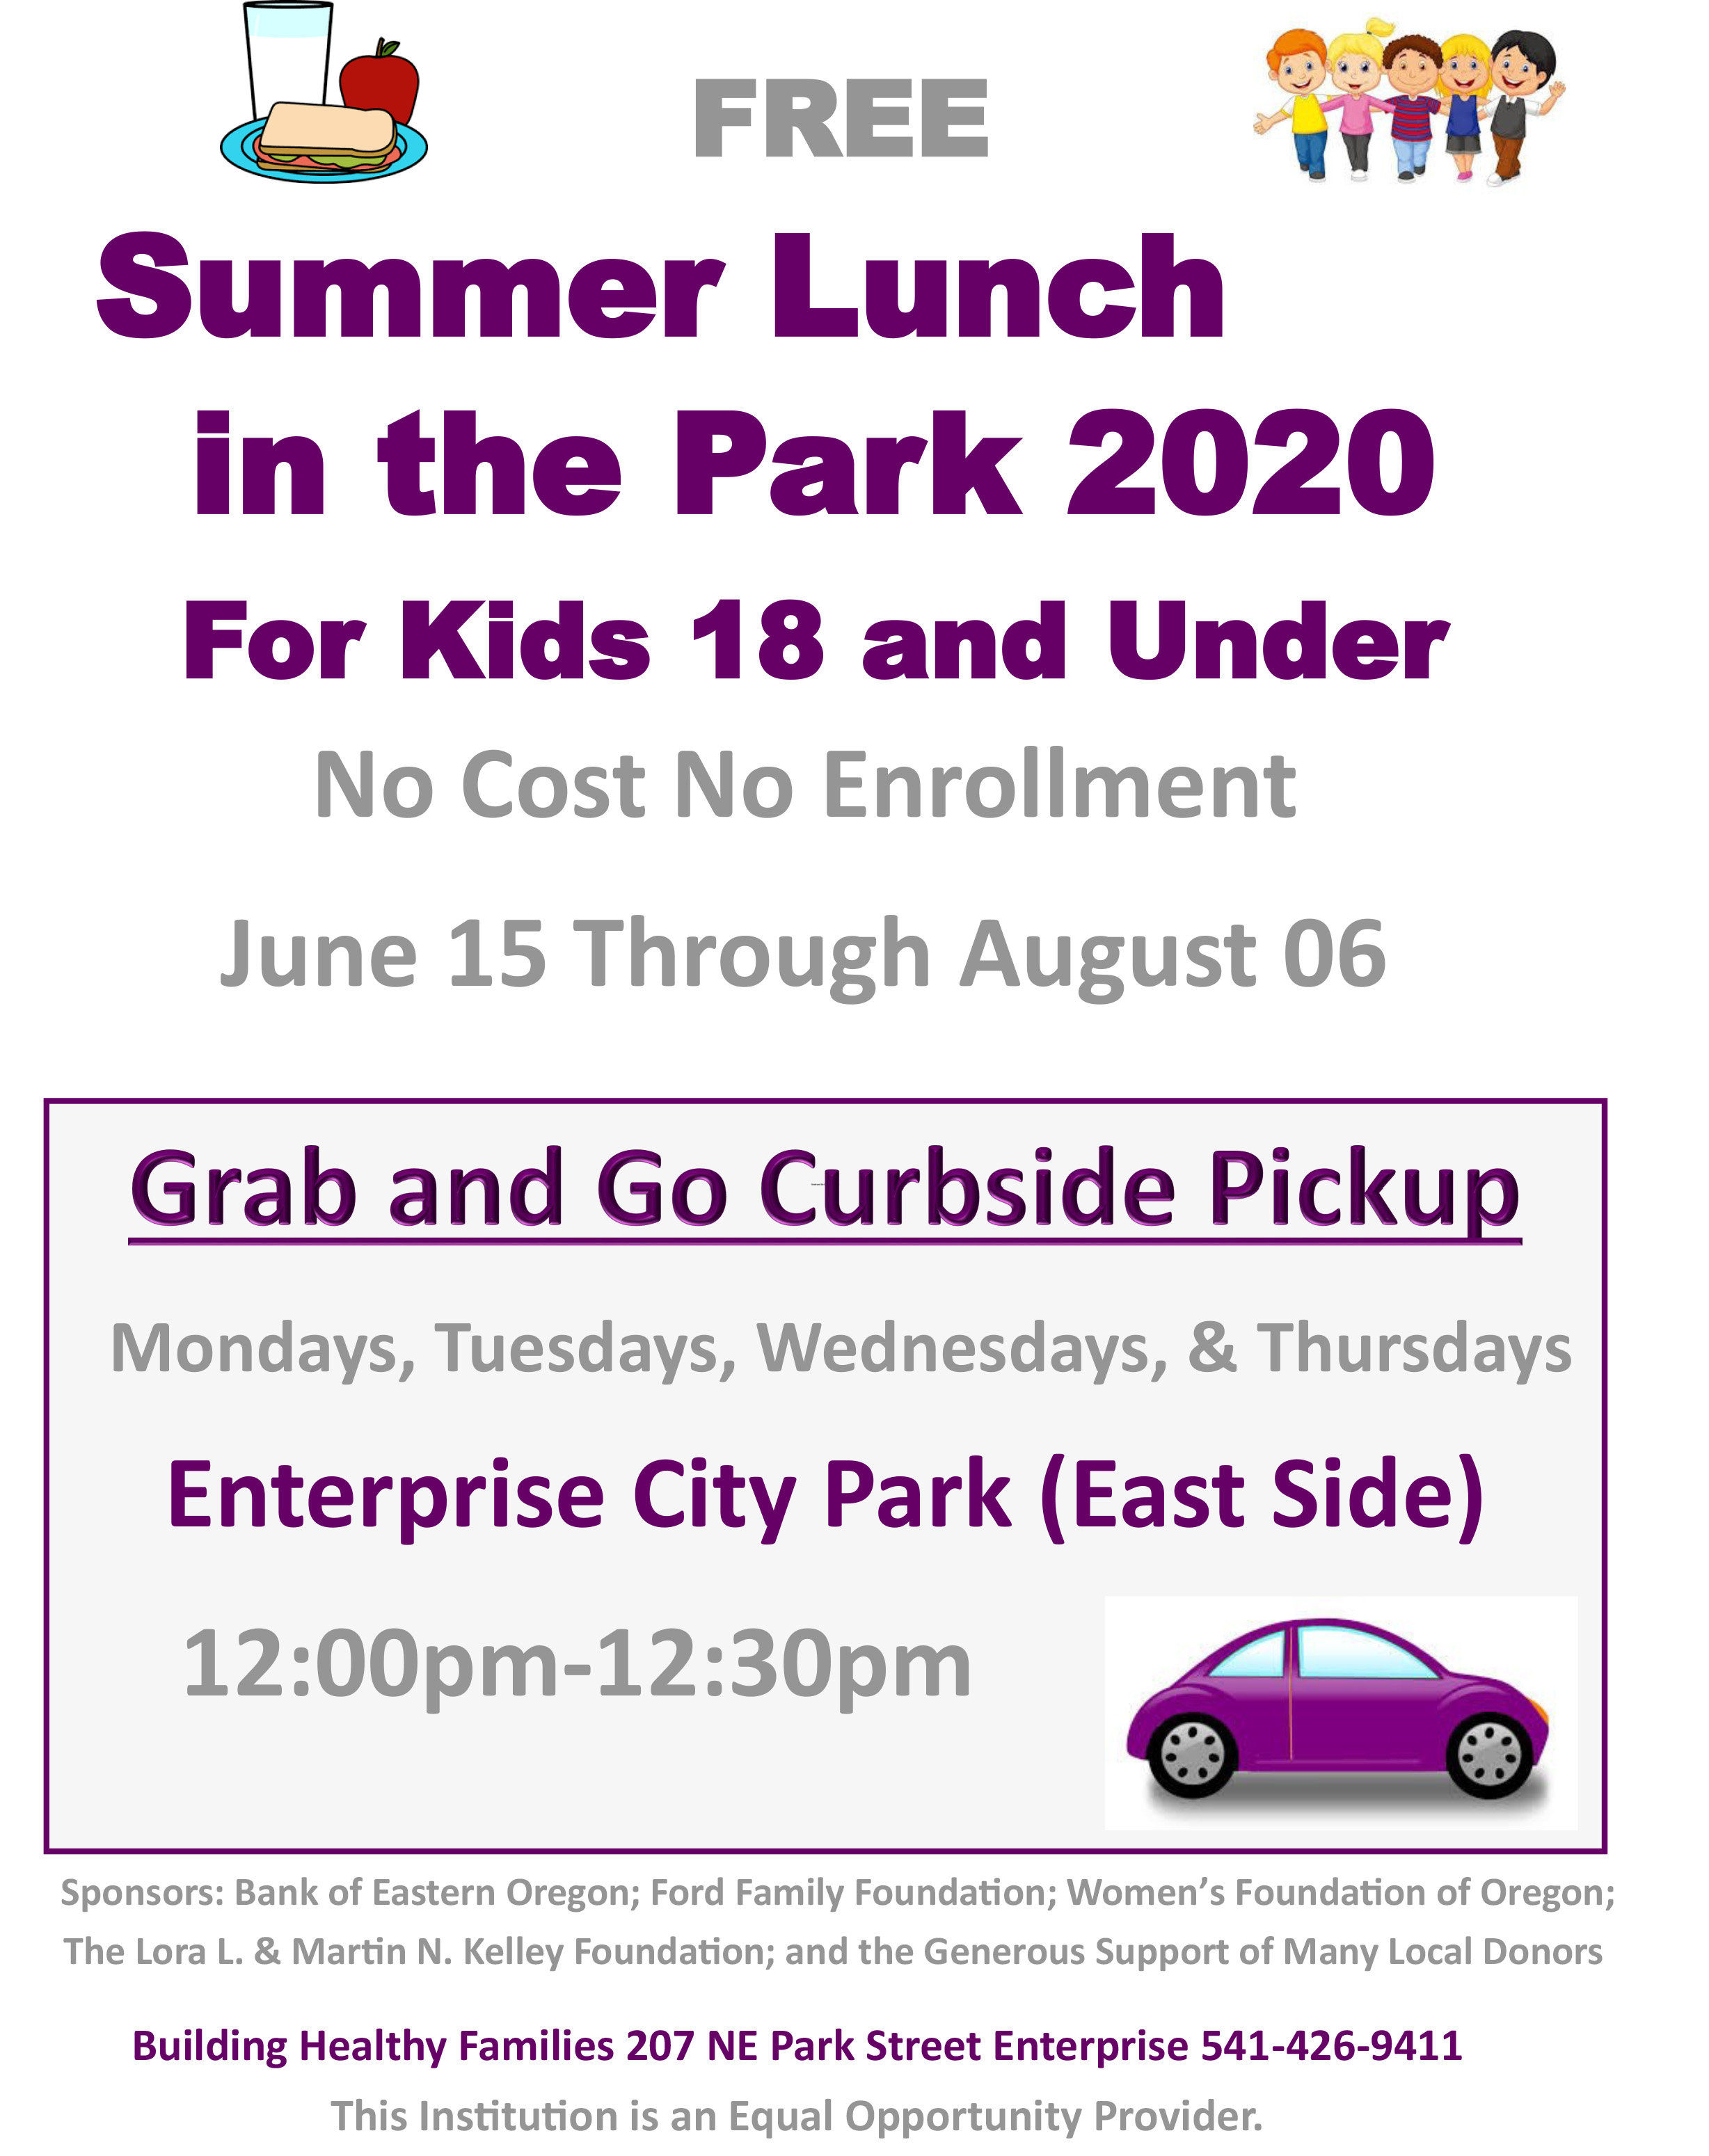 Summer Lunch Flier 2020 Enterprise